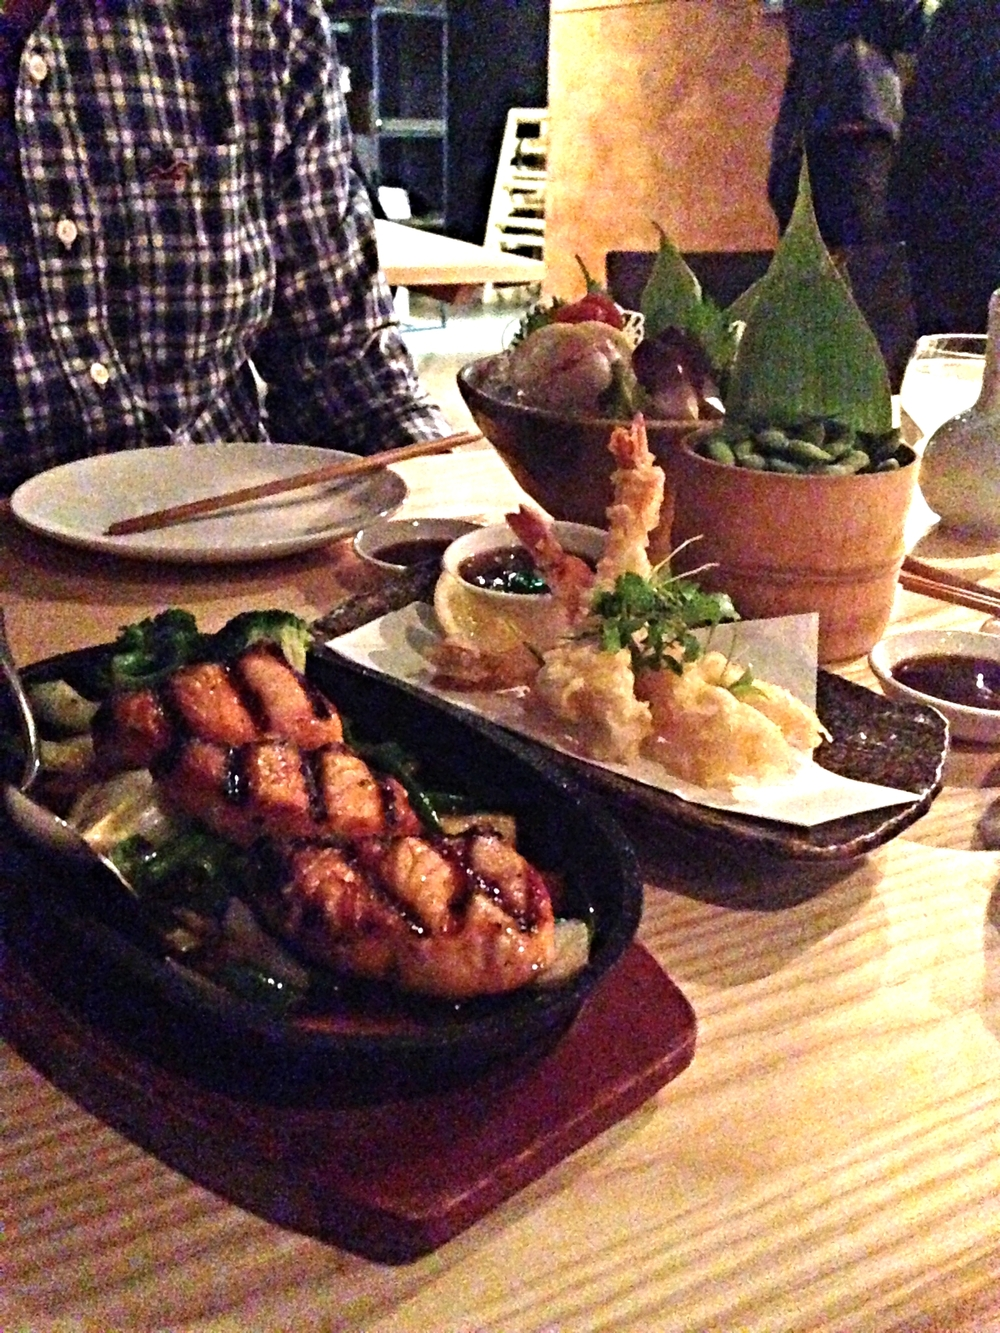 Teriyaki salmon and tempura prawns at Yama Momo